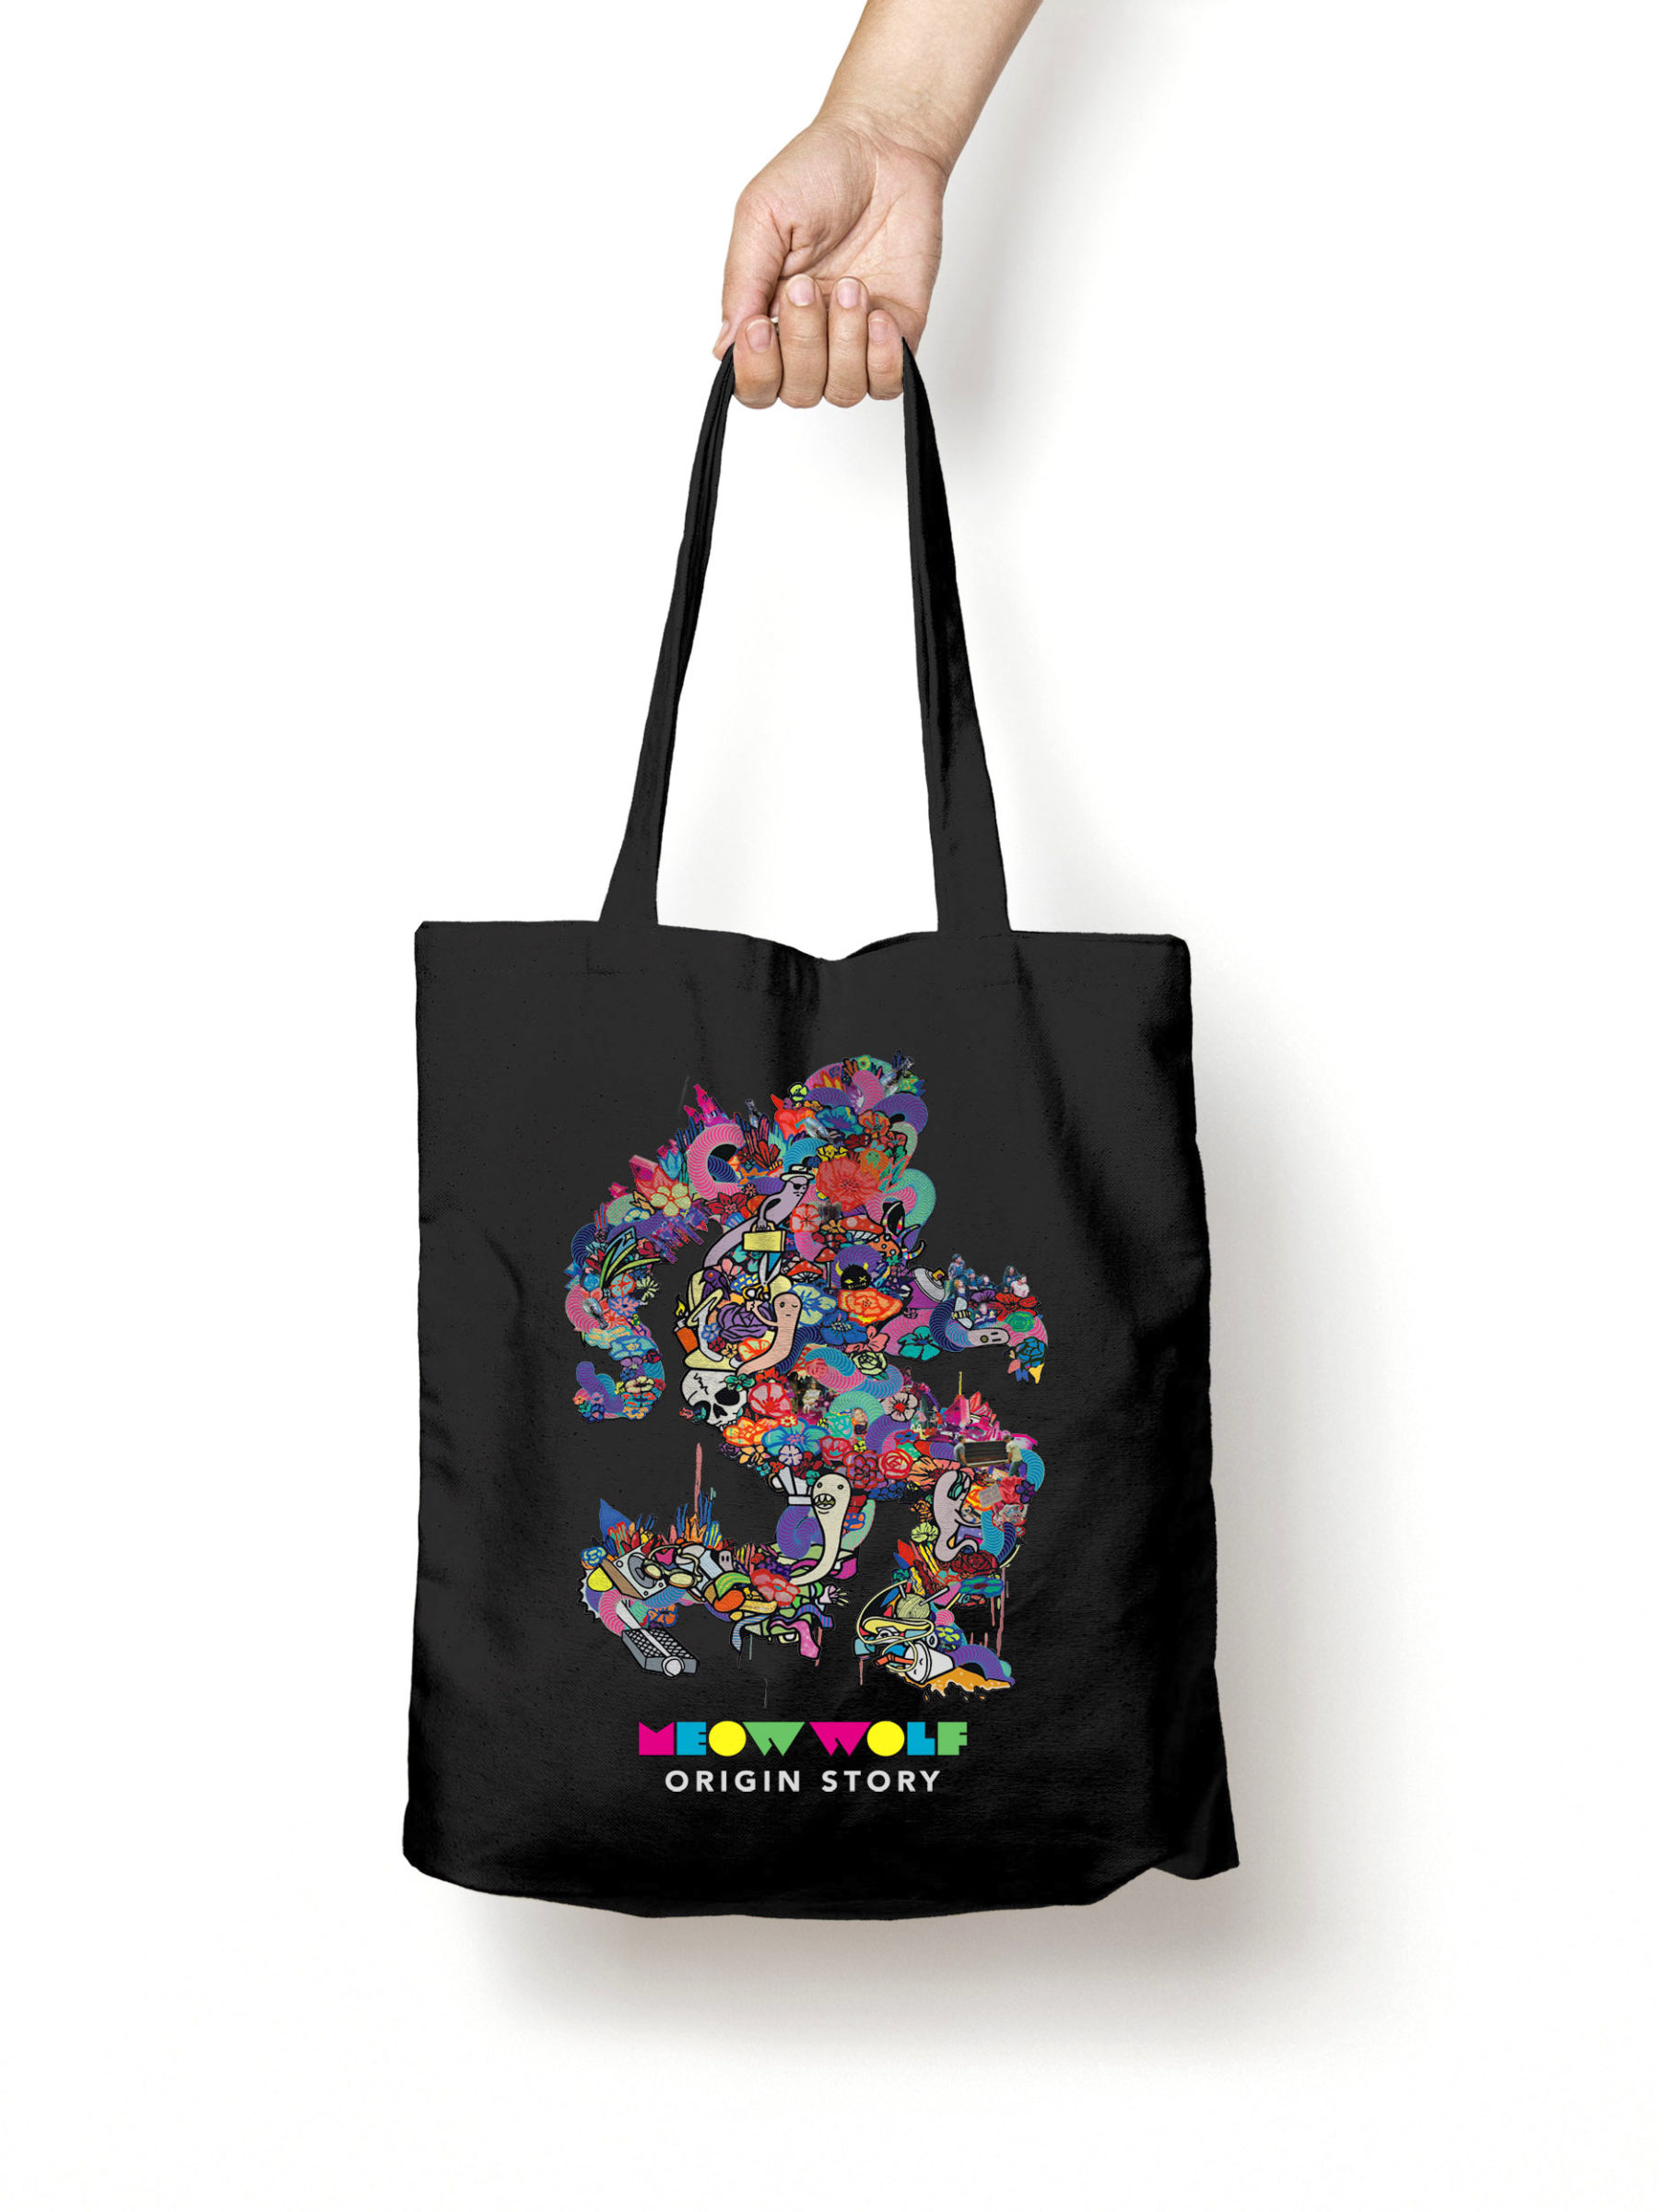 Origin Story Tote Bag MockUp